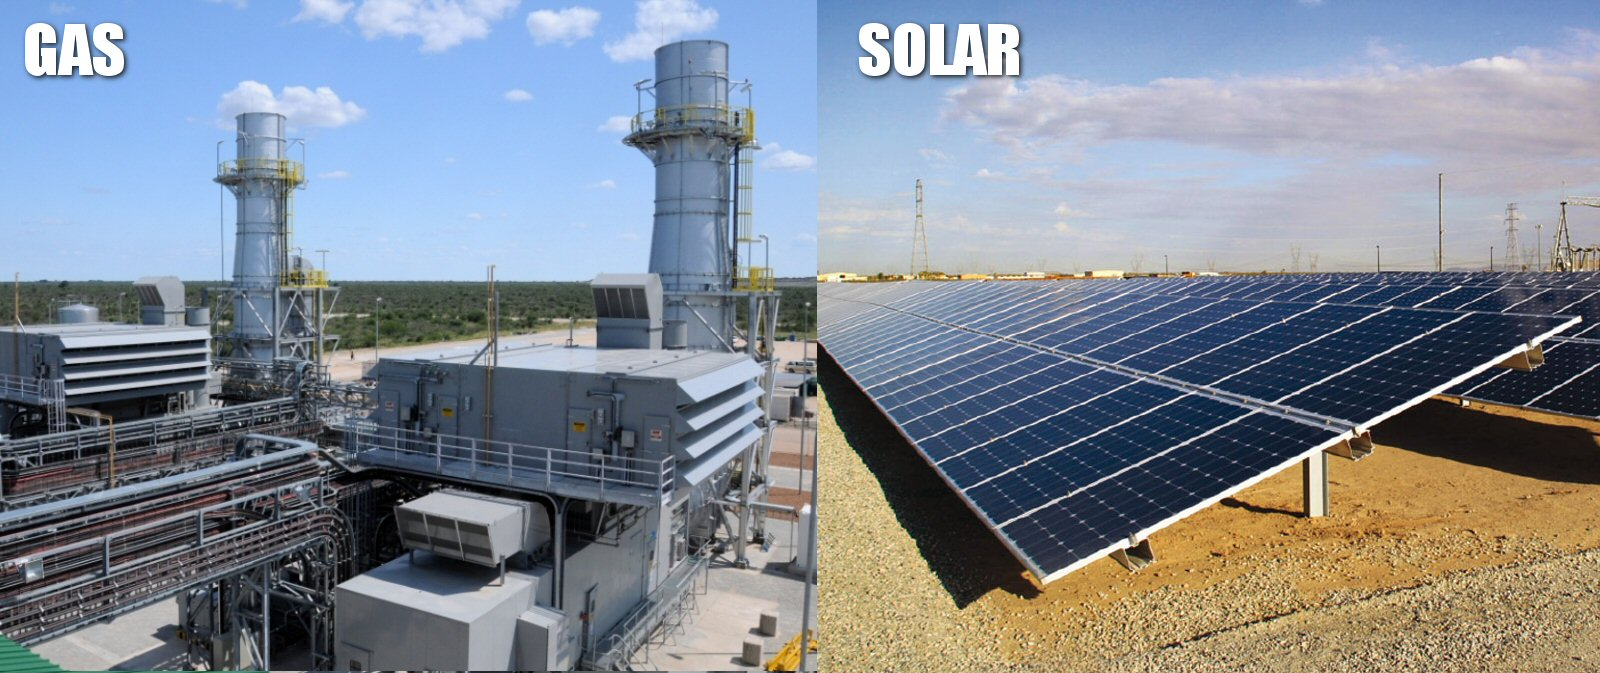 hight resolution of a solar power plant vs a natural gas power plant capital cost apples to apples watts up with that